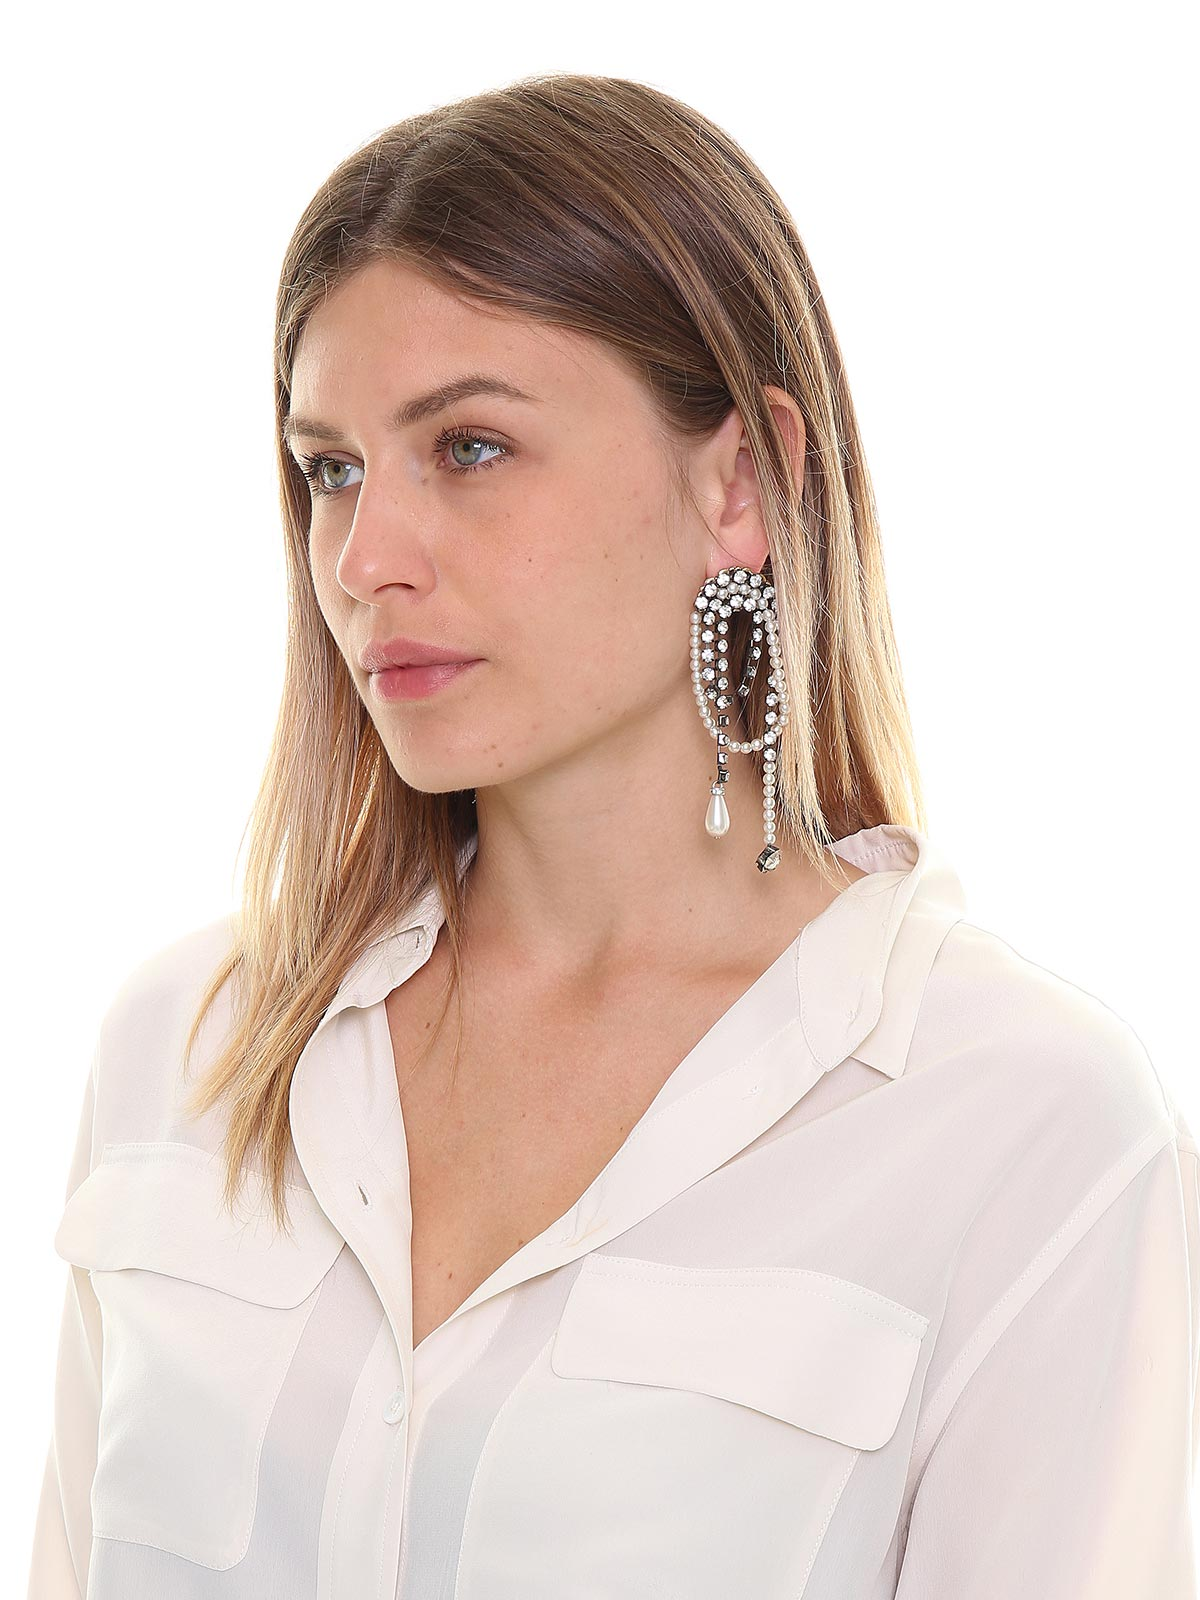 Pendent crystal earrings embellished with drops and pearls